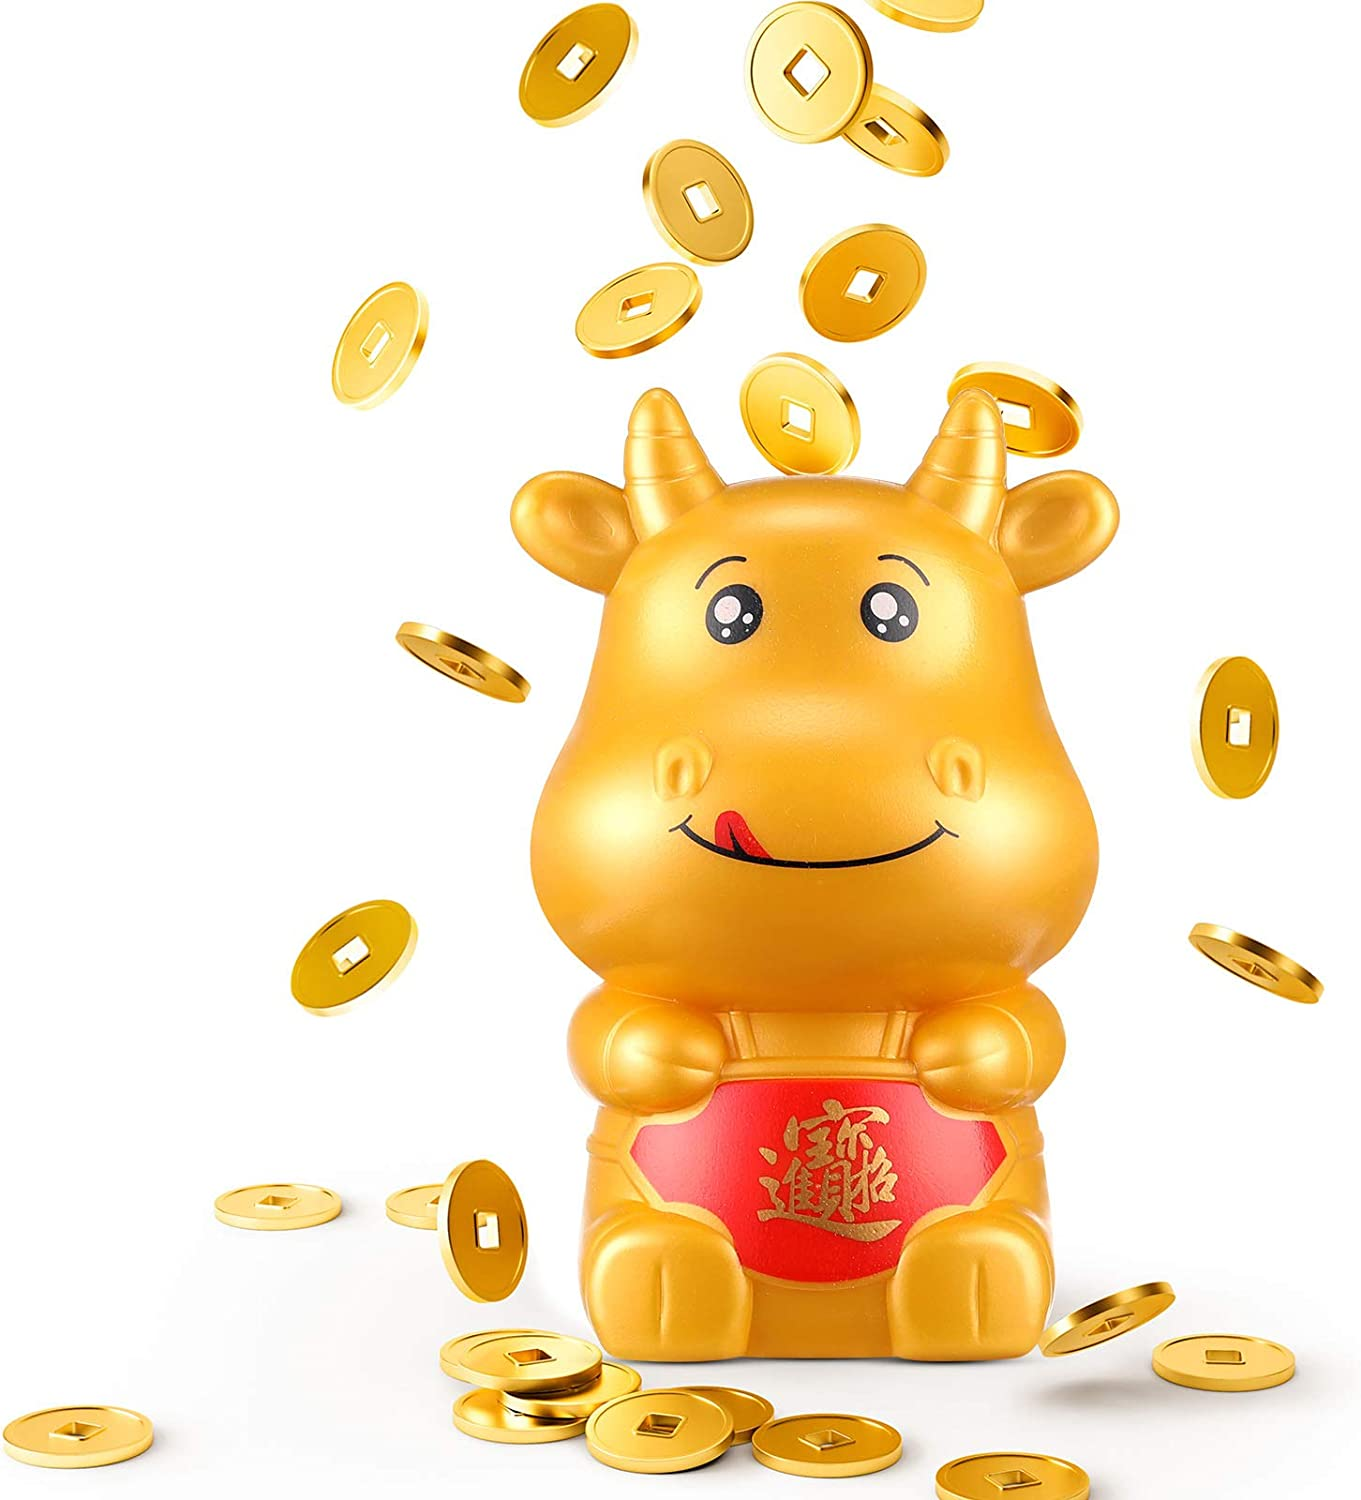 Ox Cow Money Bank Plastic Gold Piggy New Year Coin Saving Box Decorations Patelai Chinese New Year Supplies Favors for Kids